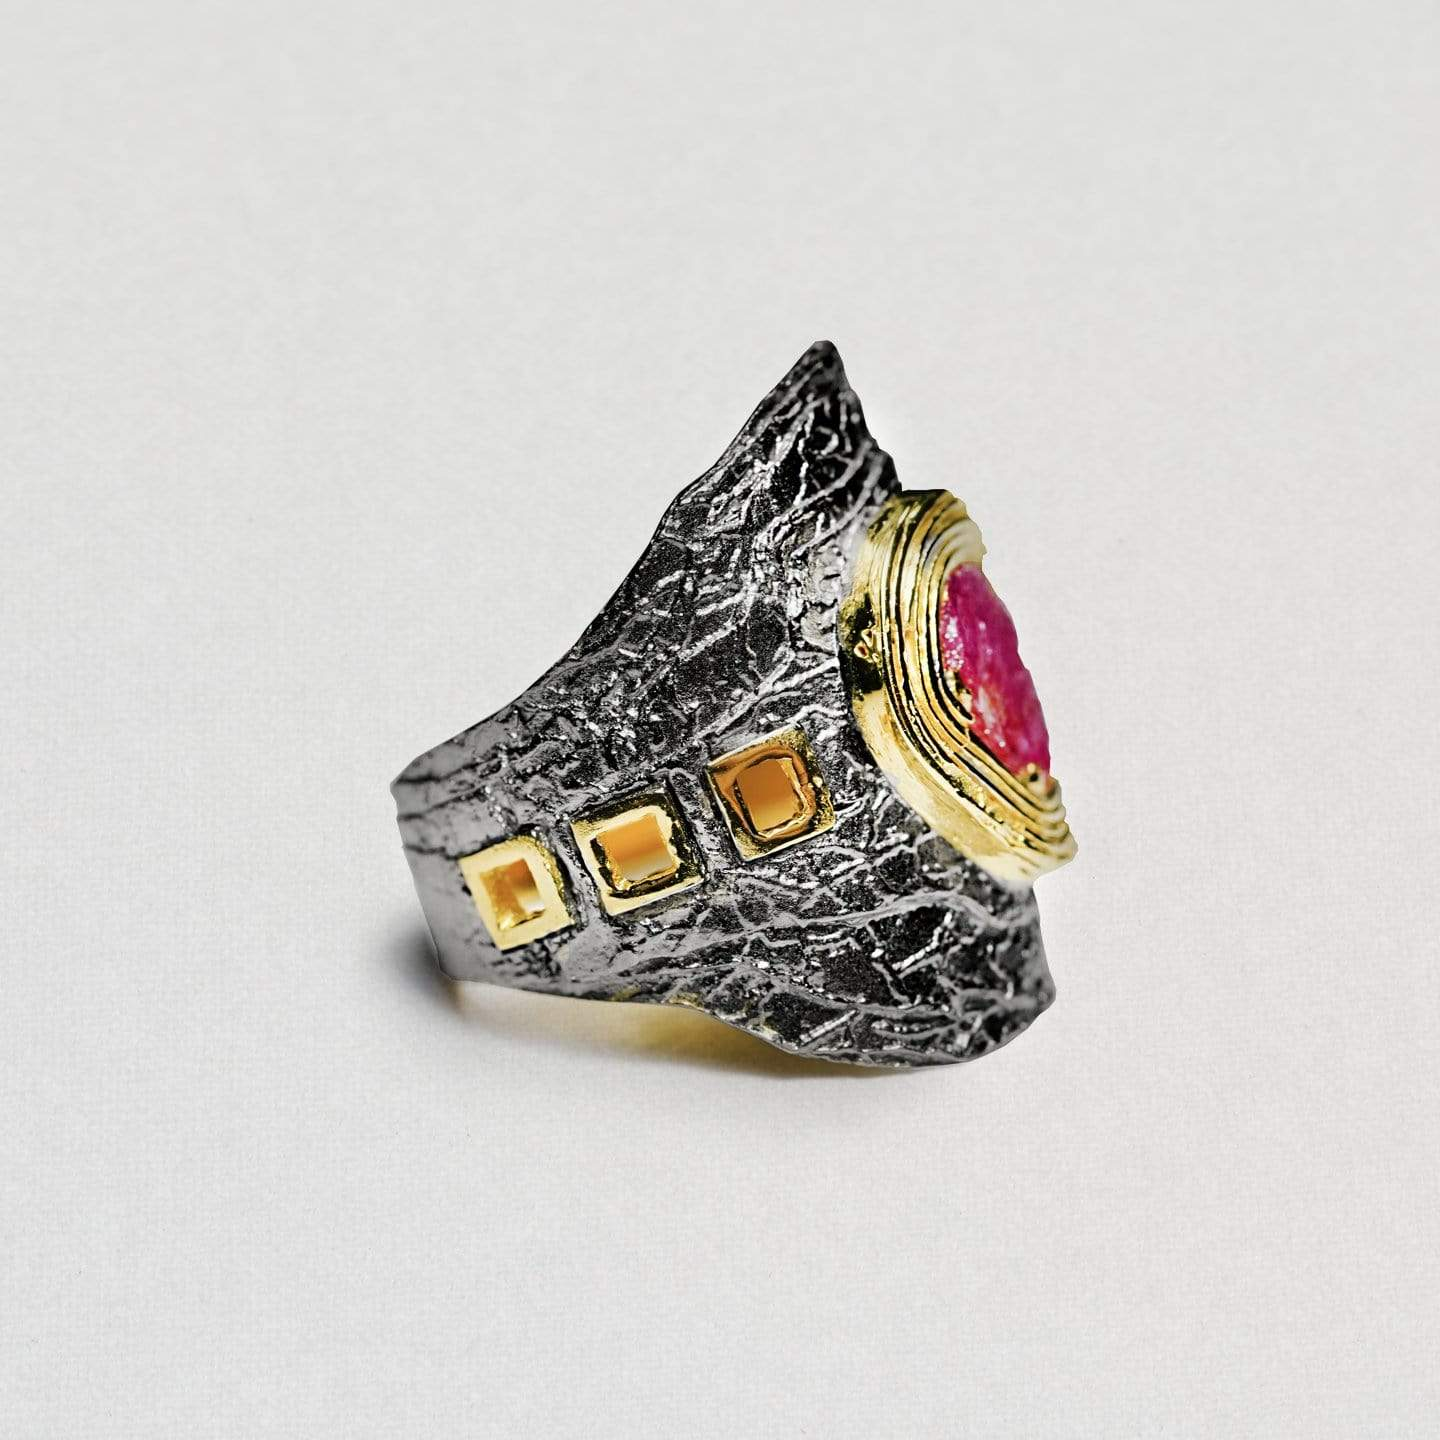 Prascia Ring, Gold, gray, Handmade, Rhodium, Ruby, spo-disabled, StoneColor:PinkRuby, Style:Everyday, Type:StoneCandyScattered Ring